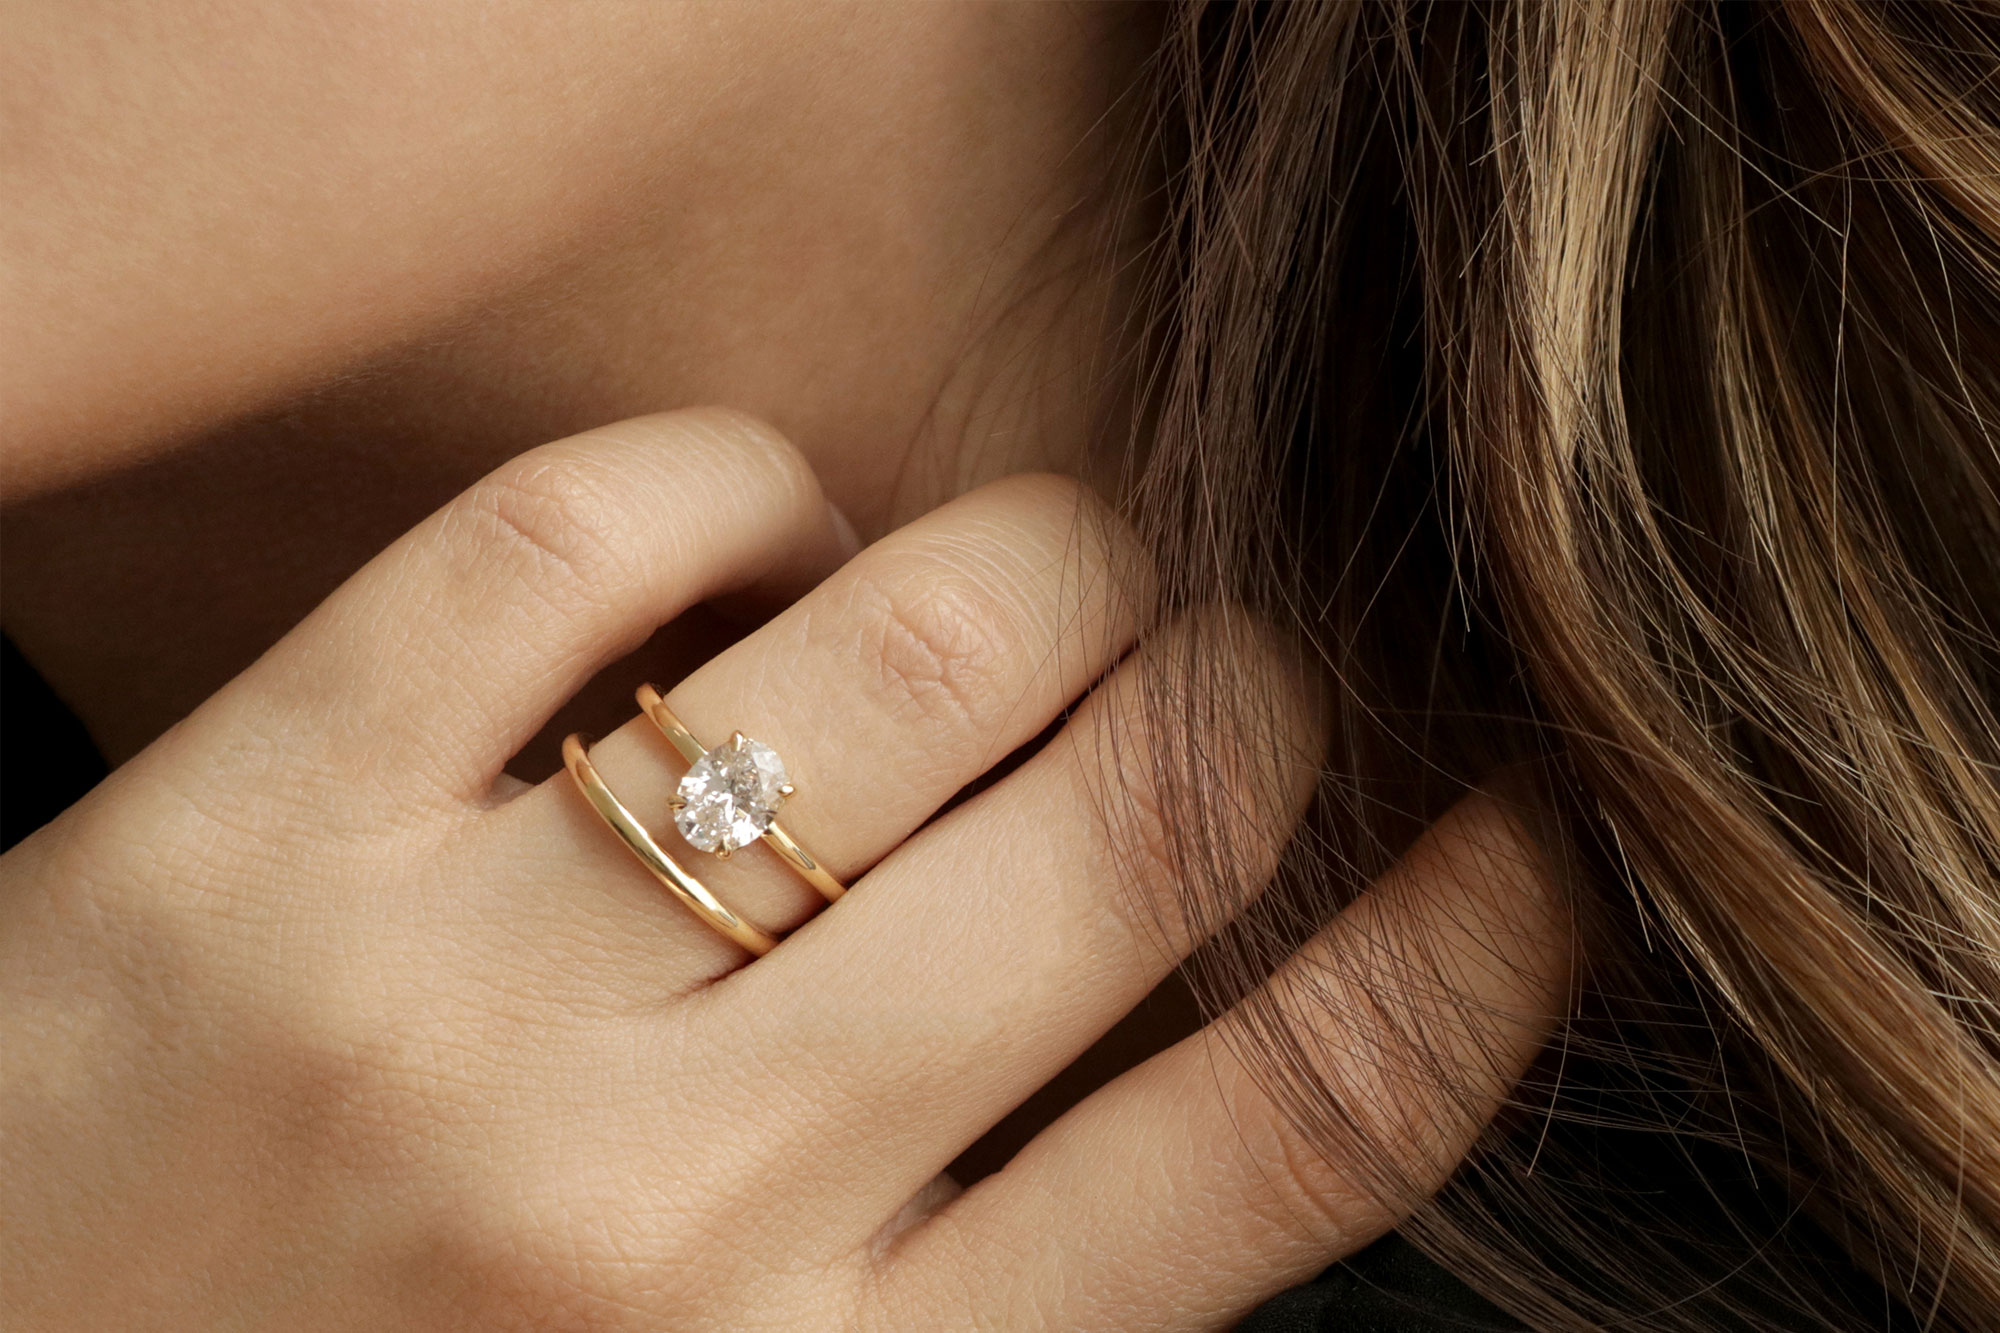 The oval signature with yellow gold band